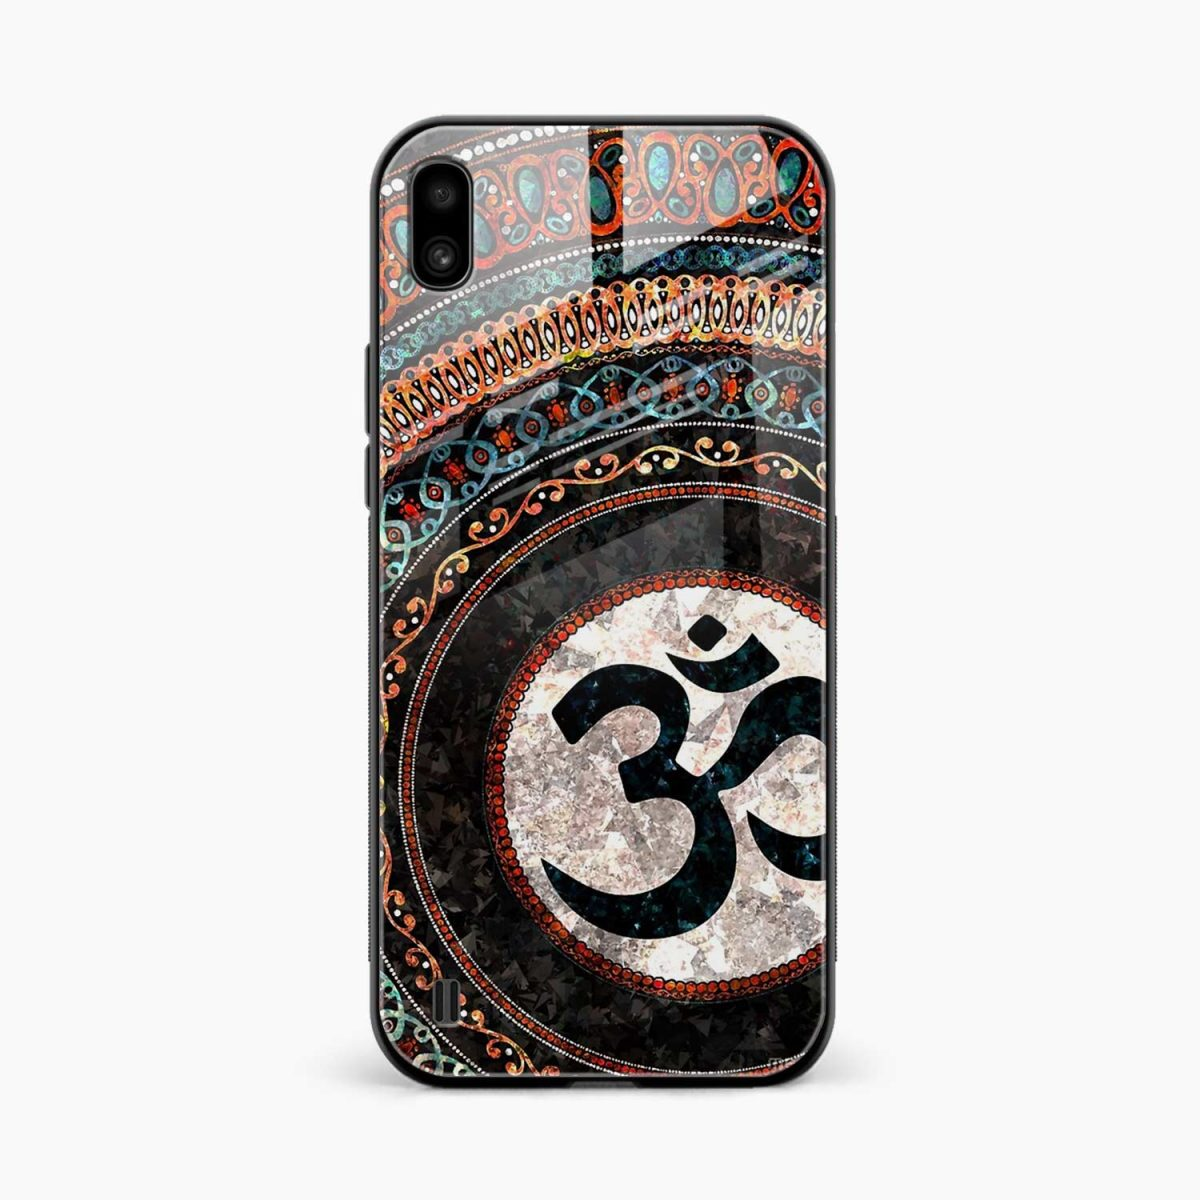 om glass front view samsung galaxy a10 back cover